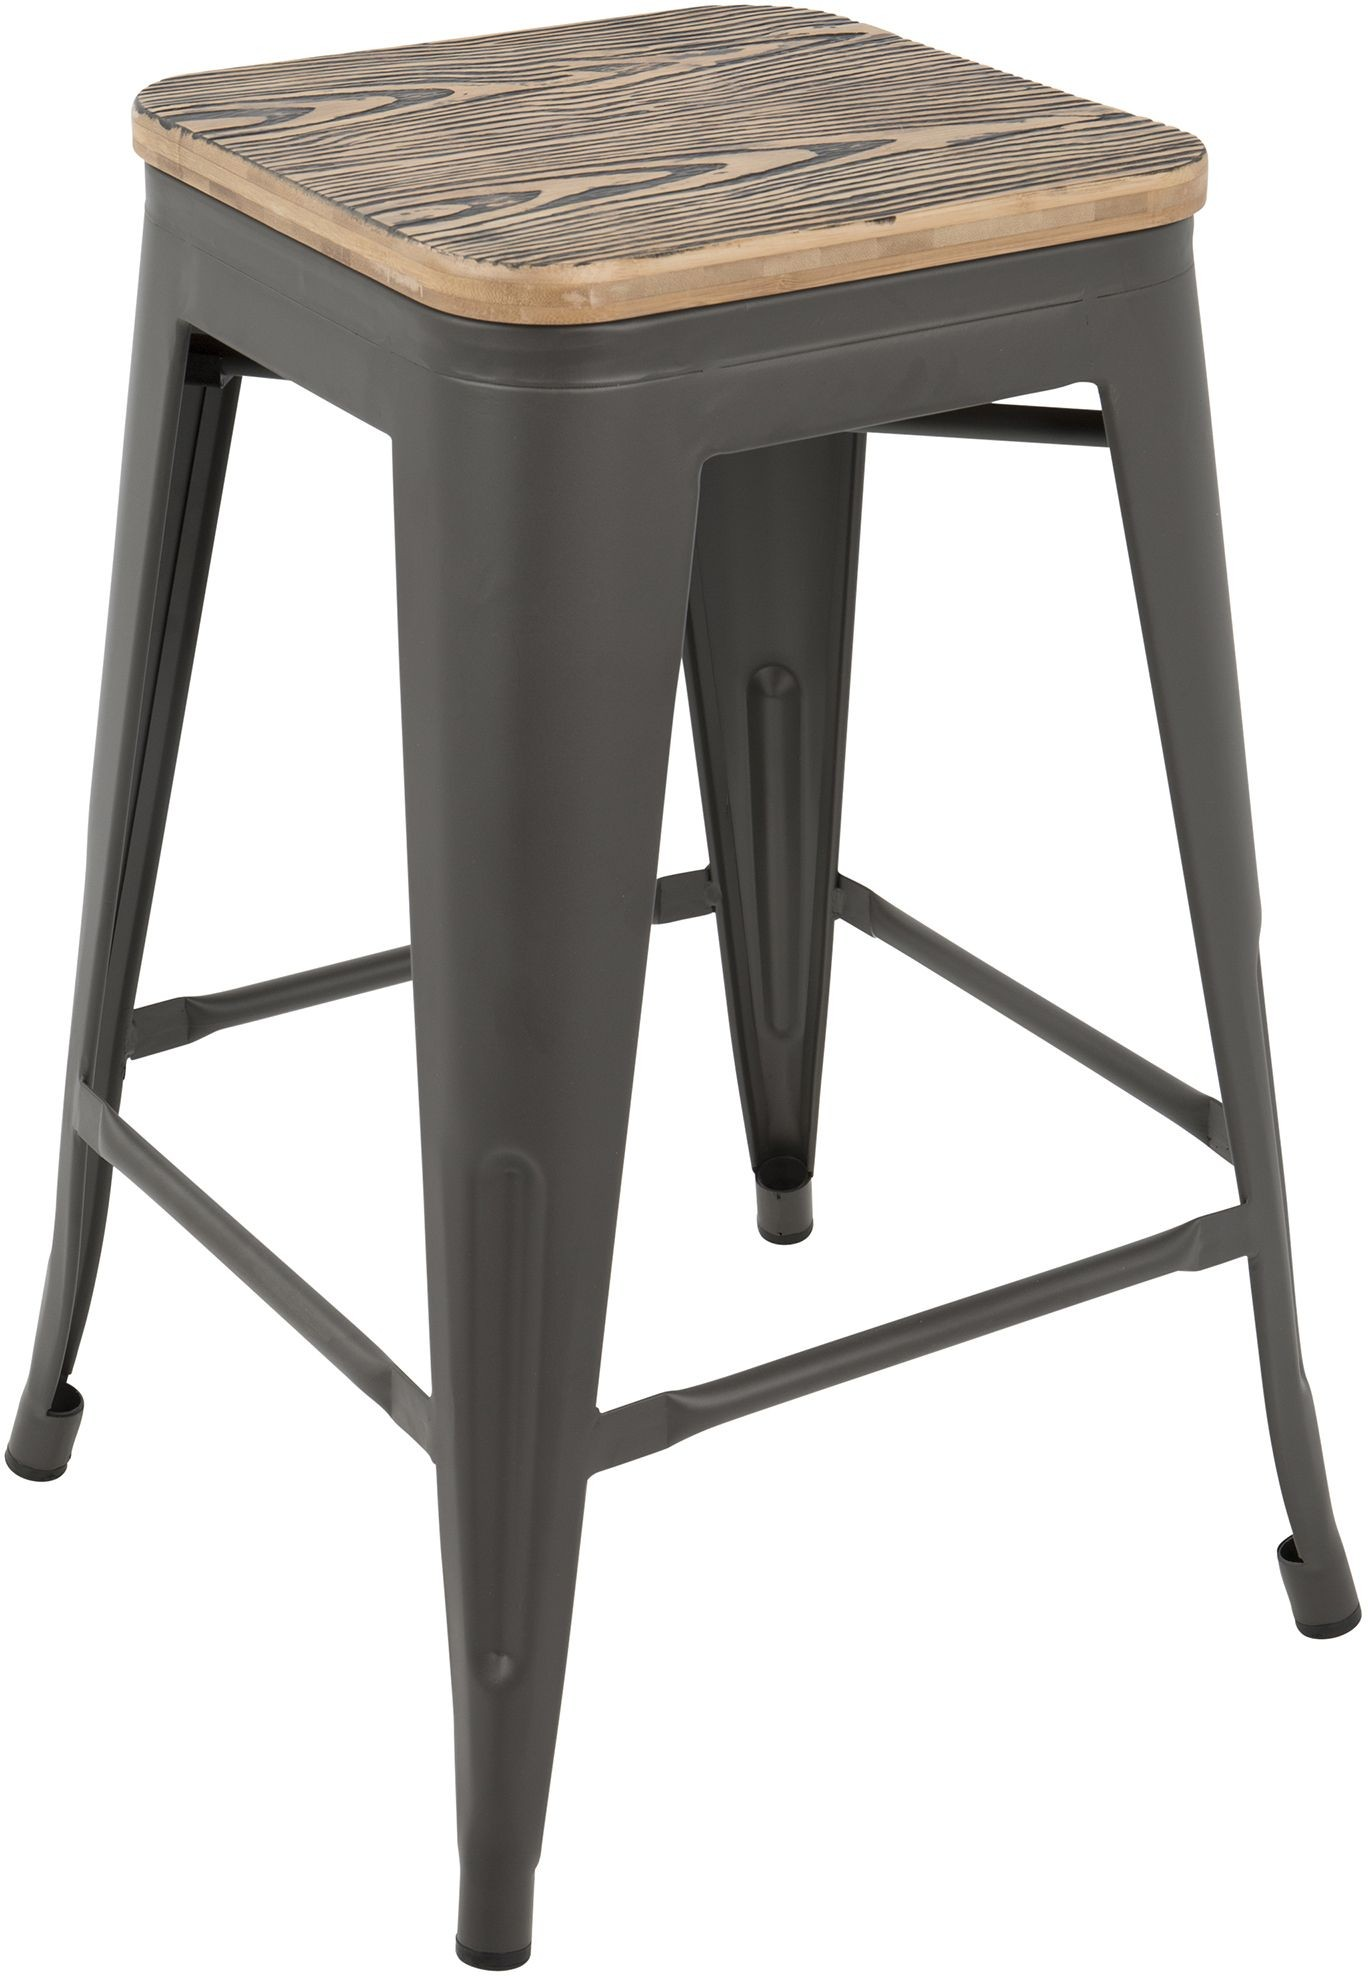 Oregon Gray Counter Stool Set of 2 from Lumisource  : oregoncounterstoolbngy2000main from colemanfurniture.com size 1368 x 1976 jpeg 213kB